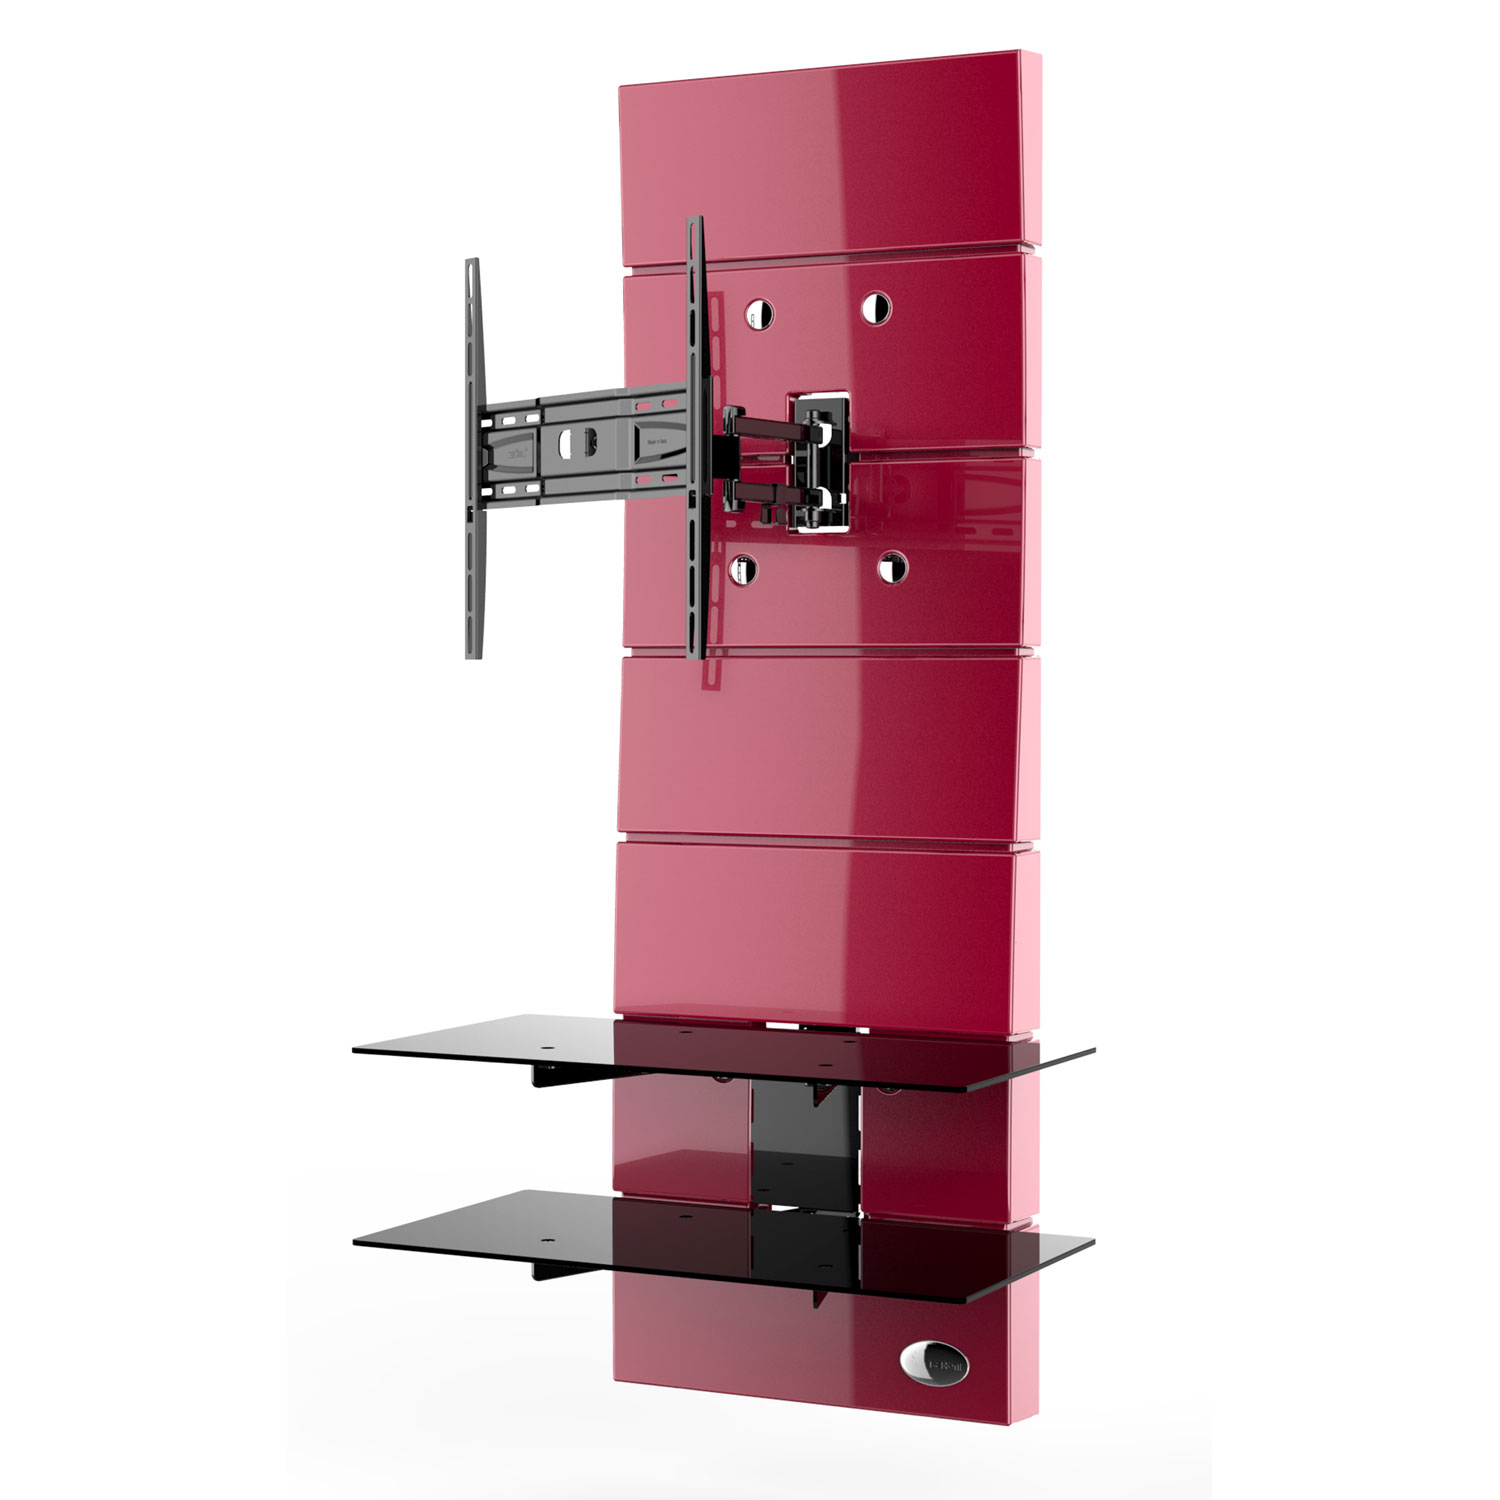 Meuble Tv Orientable - Meliconi Ghost Design 3000 Rotation Rouge Meuble Tv Meliconi Sur [mjhdah]https://www.arredaclick.com/media/catalog/product/cache/1/image/1500x/9df78eab33525d08d6e5fb8d27136e95/t/n/tnc-porta-tv-cortes-03.jpg